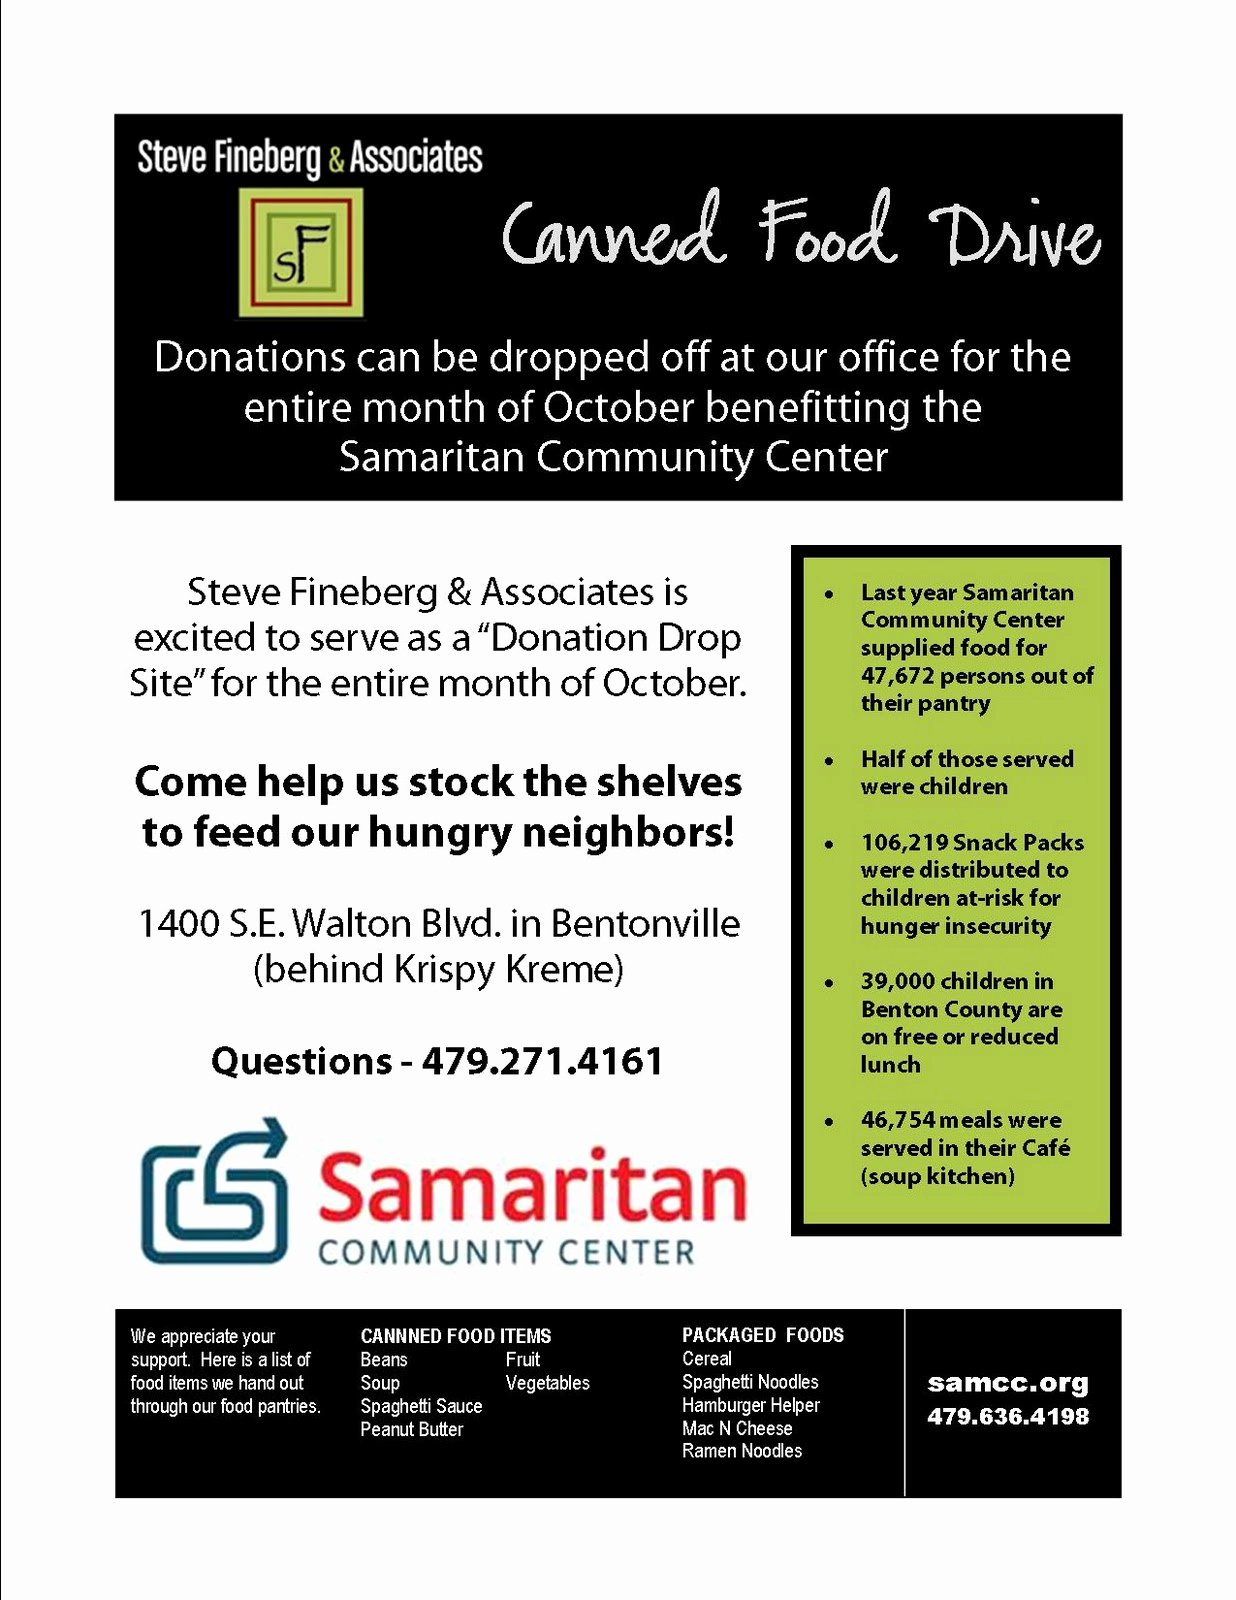 Canned Food Drive Flyer Inspirational Steve Fineberg & associates Corporate Responsibility